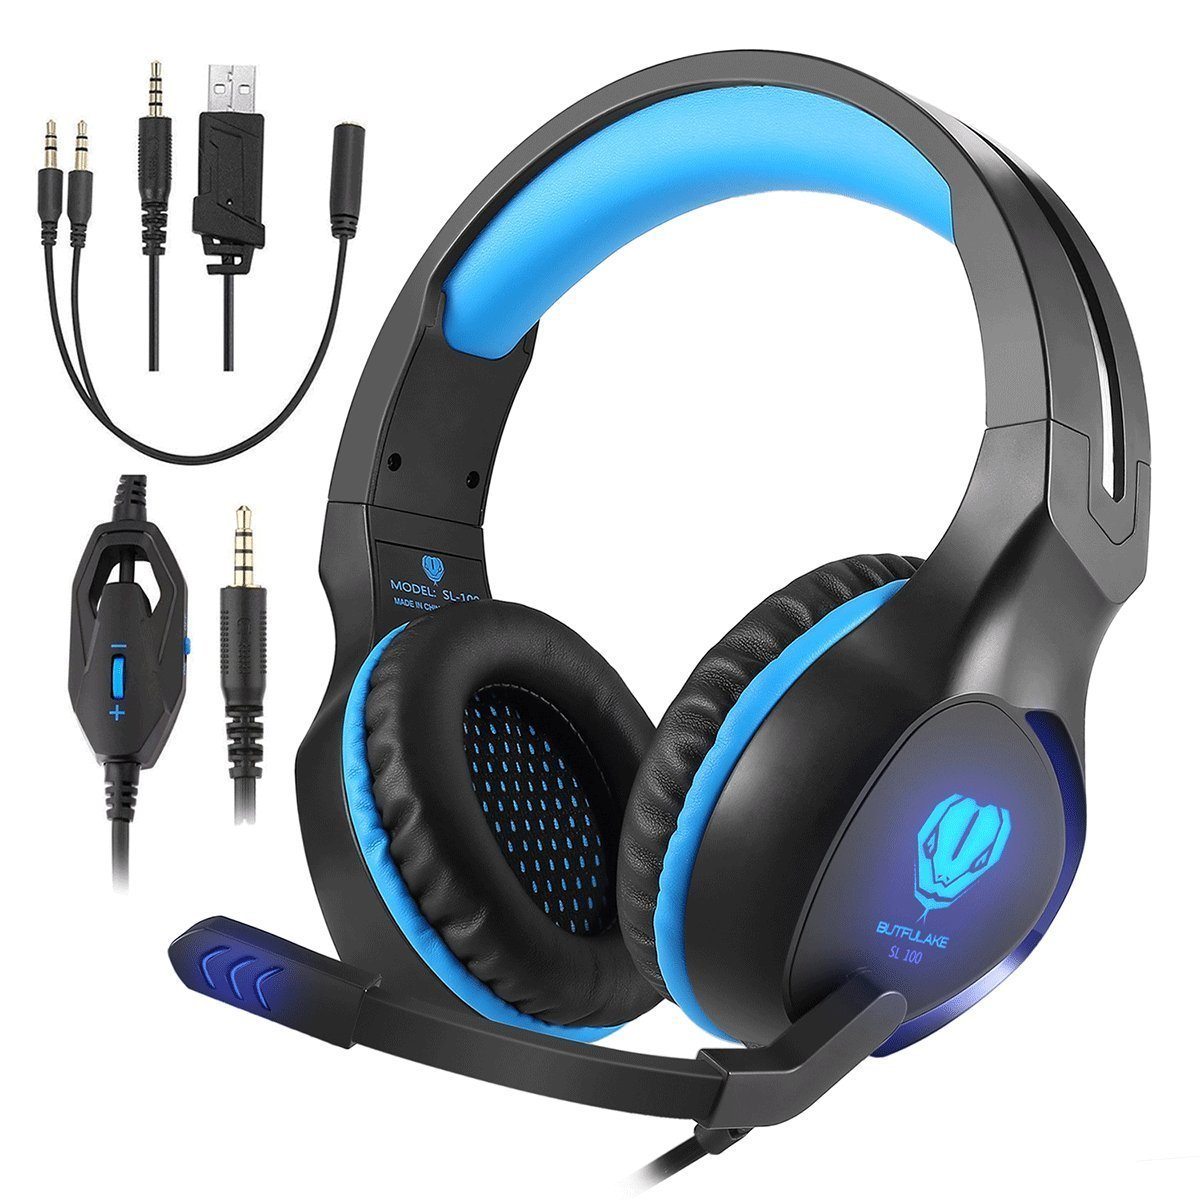 Butfulake Gaming Headset for Xbox One PS4 PlayStation 4 Nintendo Switch PC Smartphone, 3.5mm Stereo Gaming Sound Over-Ear Headphones Noise Cancelling with Mic and LED Light, Blue